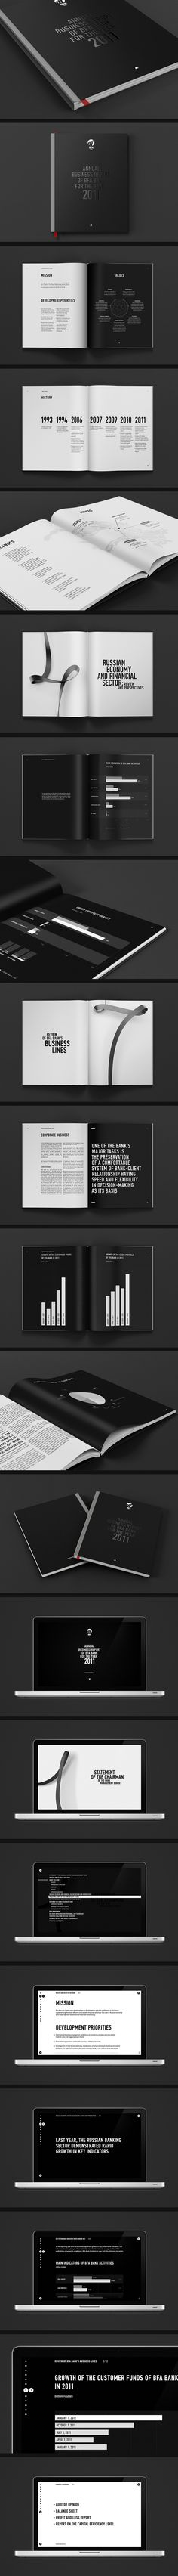 black on black :: spot varnish  2011 Annual Report for BFA Bank on Behance